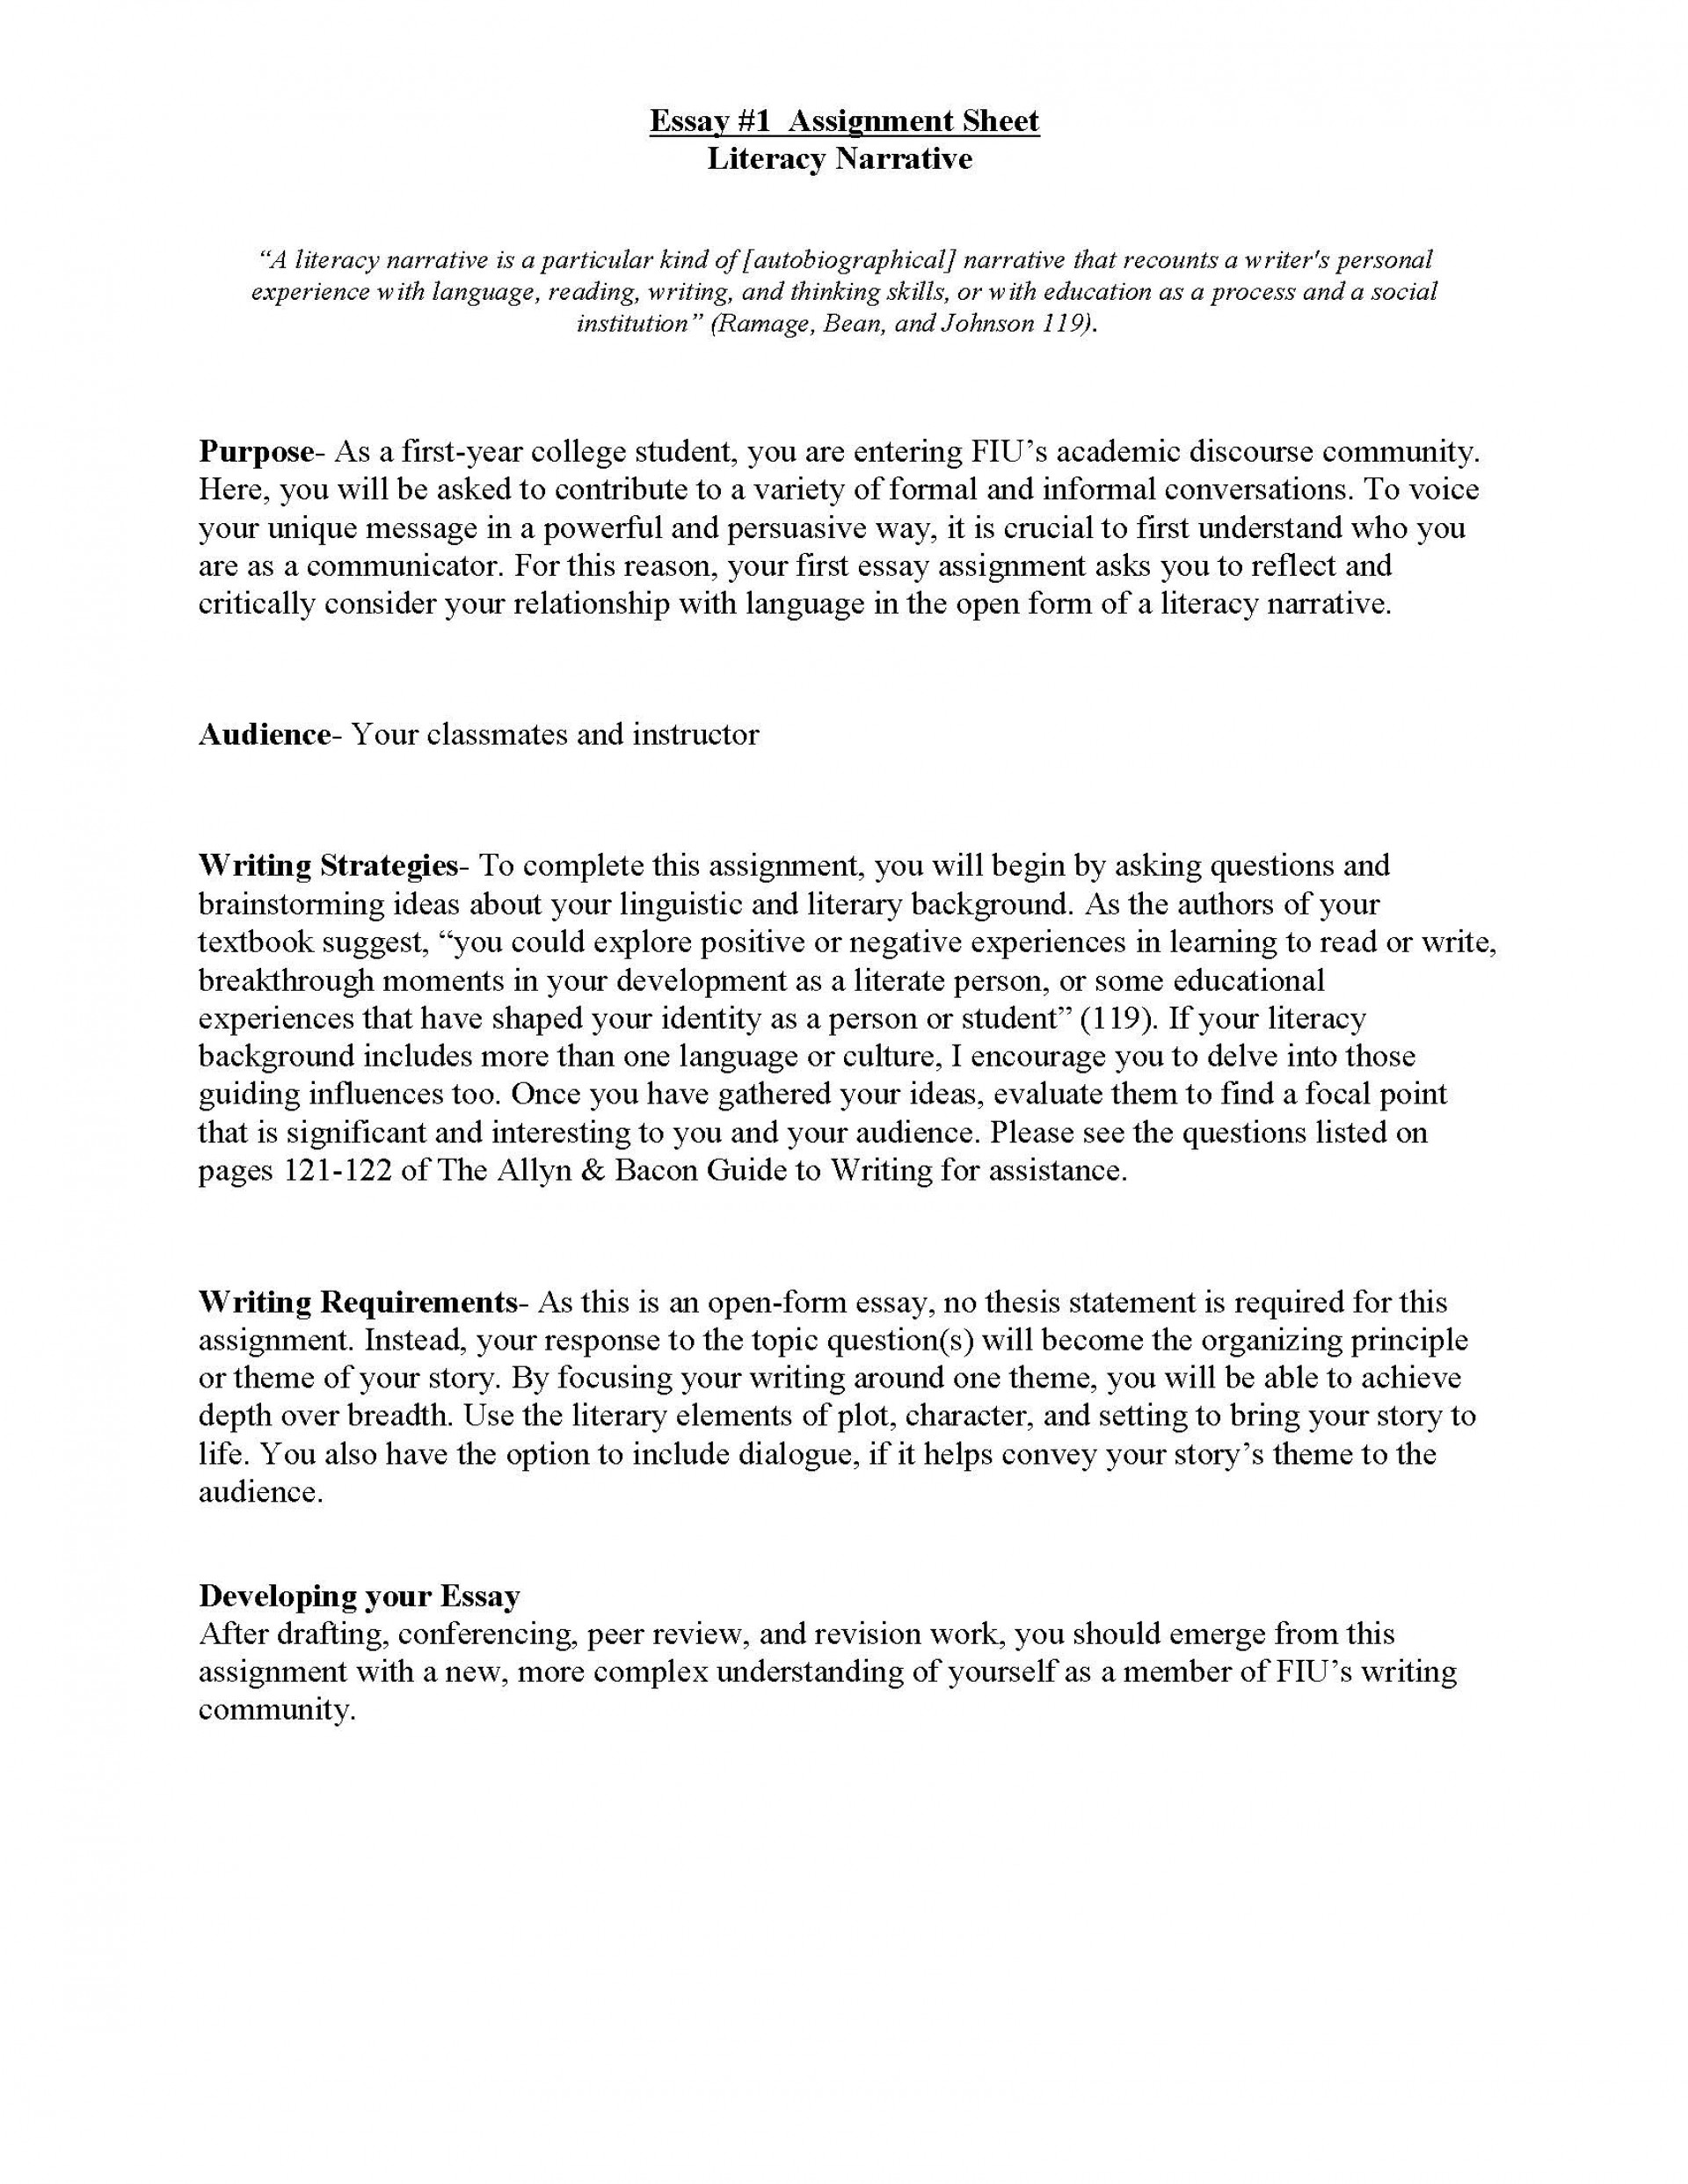 001 Literacy Narrative Unit Assignment Spring 2012 Page 1 Research Paper Personal Essay Wonderful Topics 1920